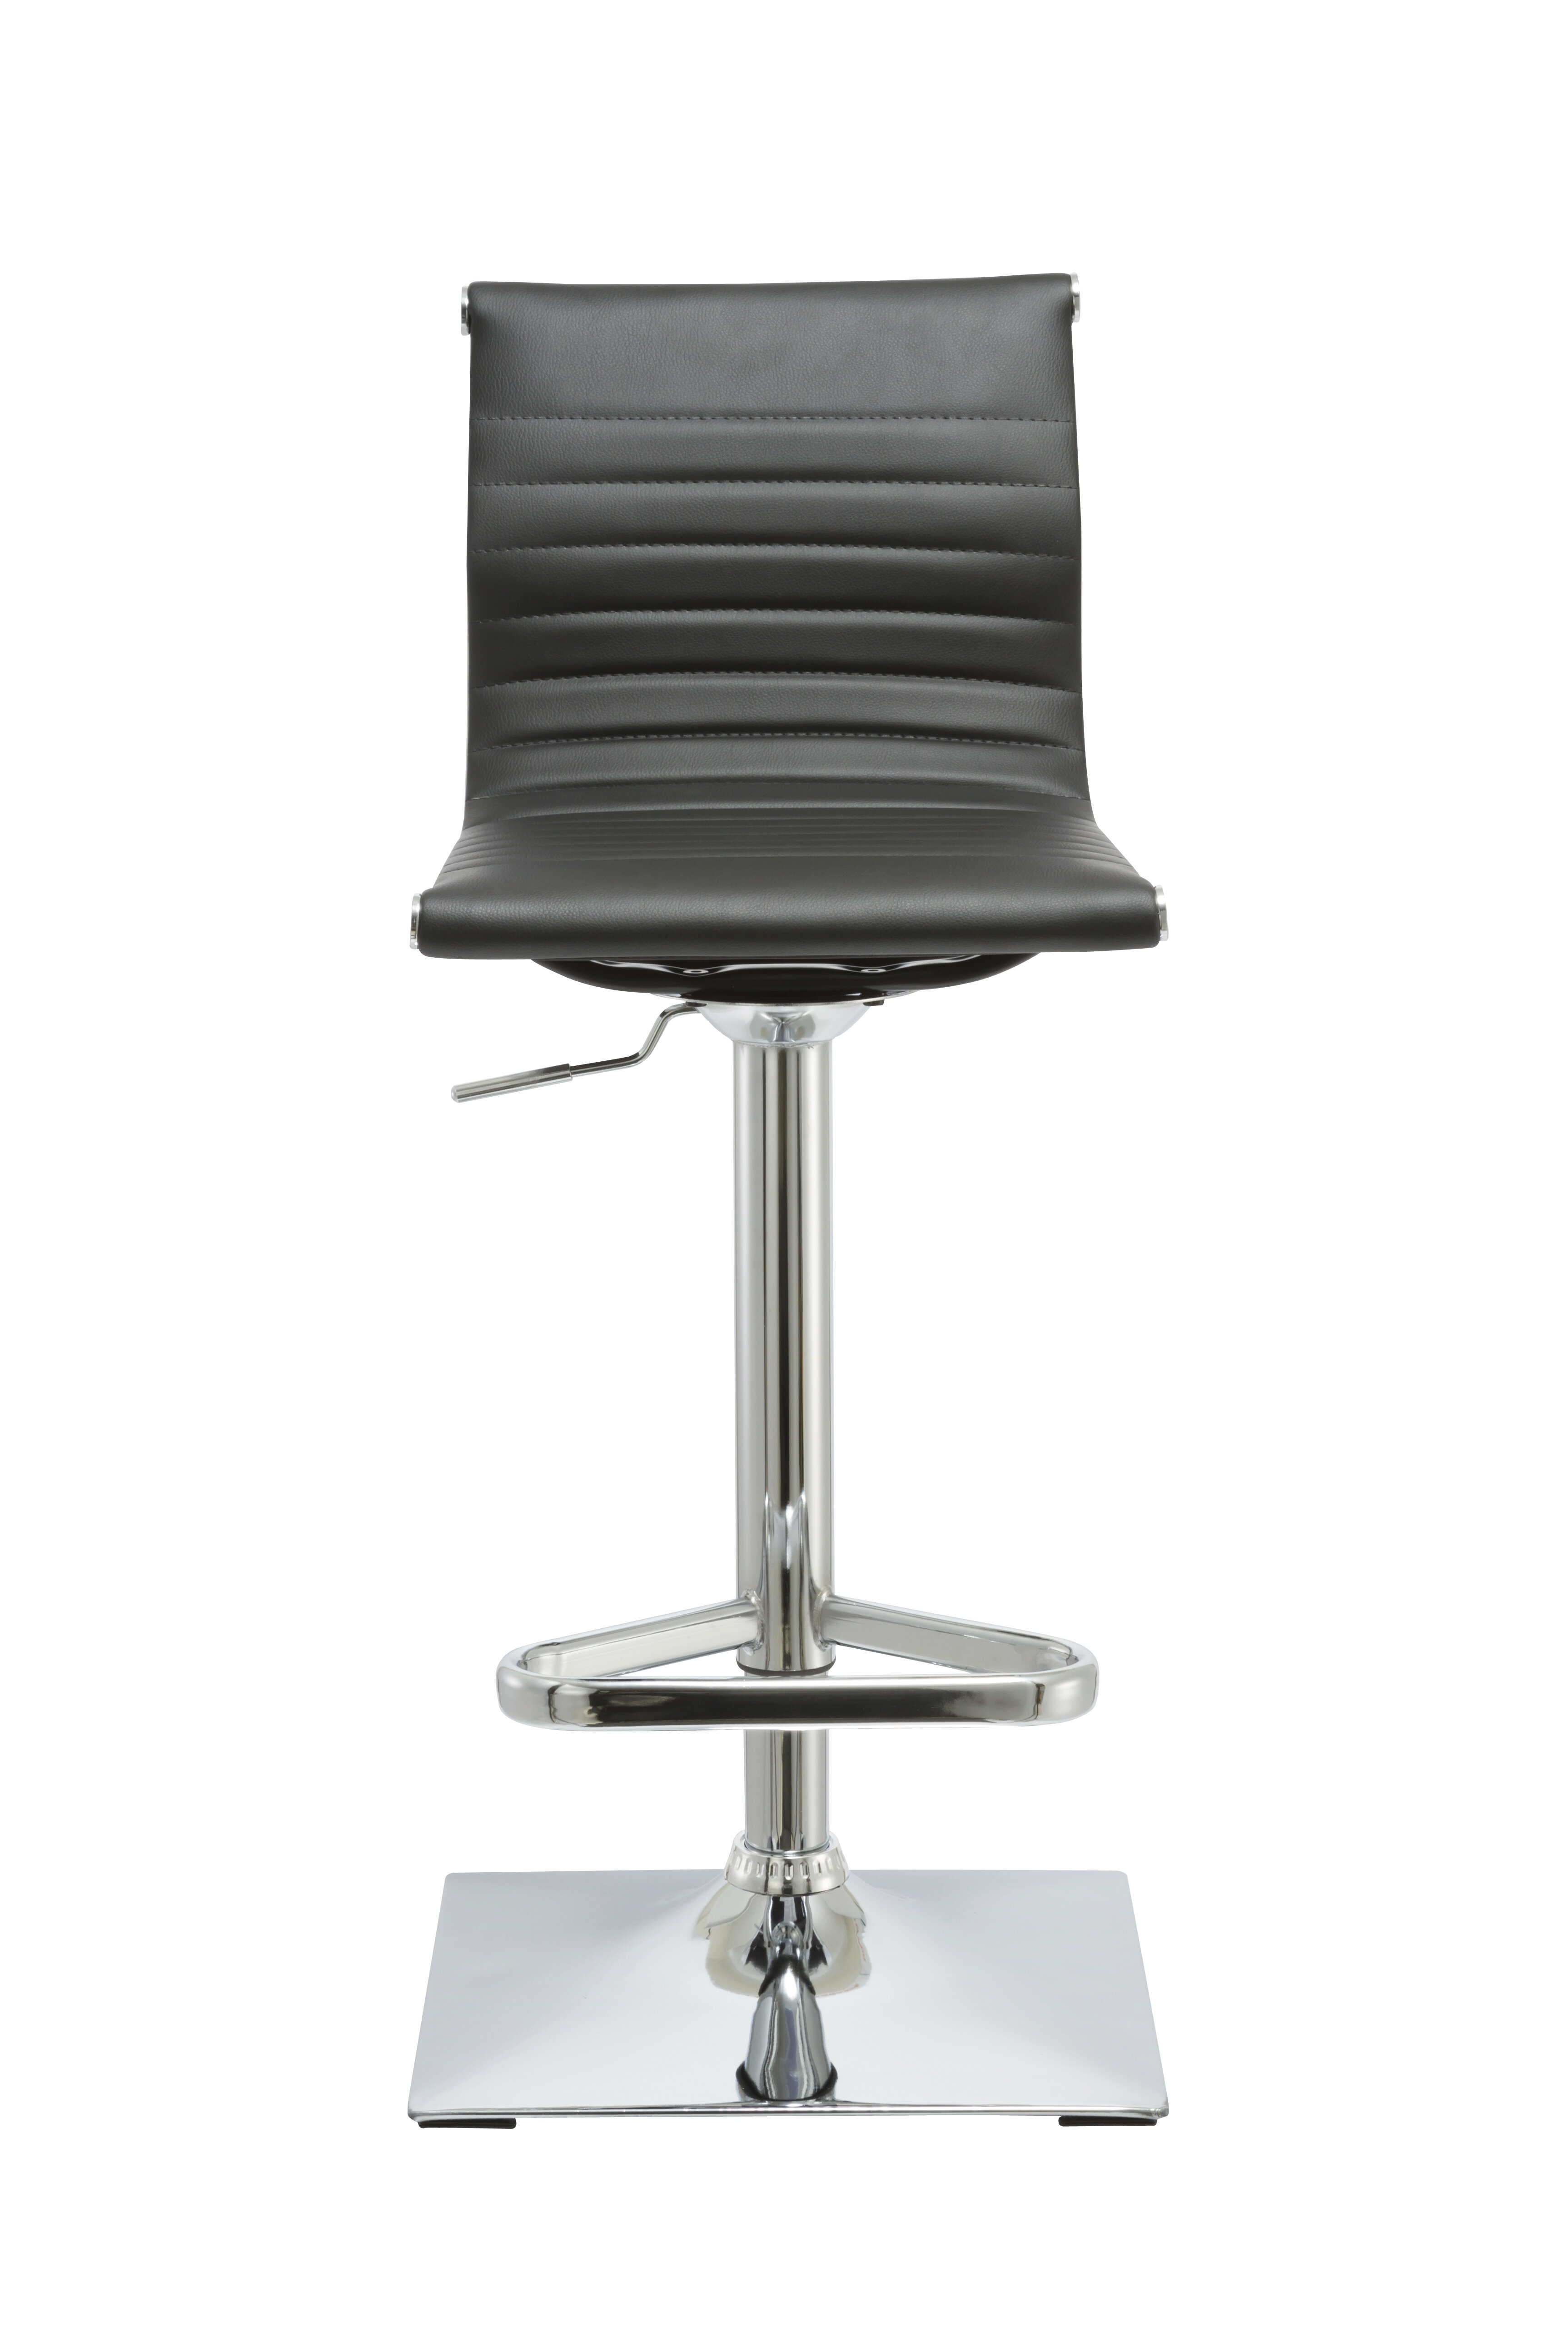 Orren Ellis Kranz Adjustable Height Swivel Bar Stool Wayfair